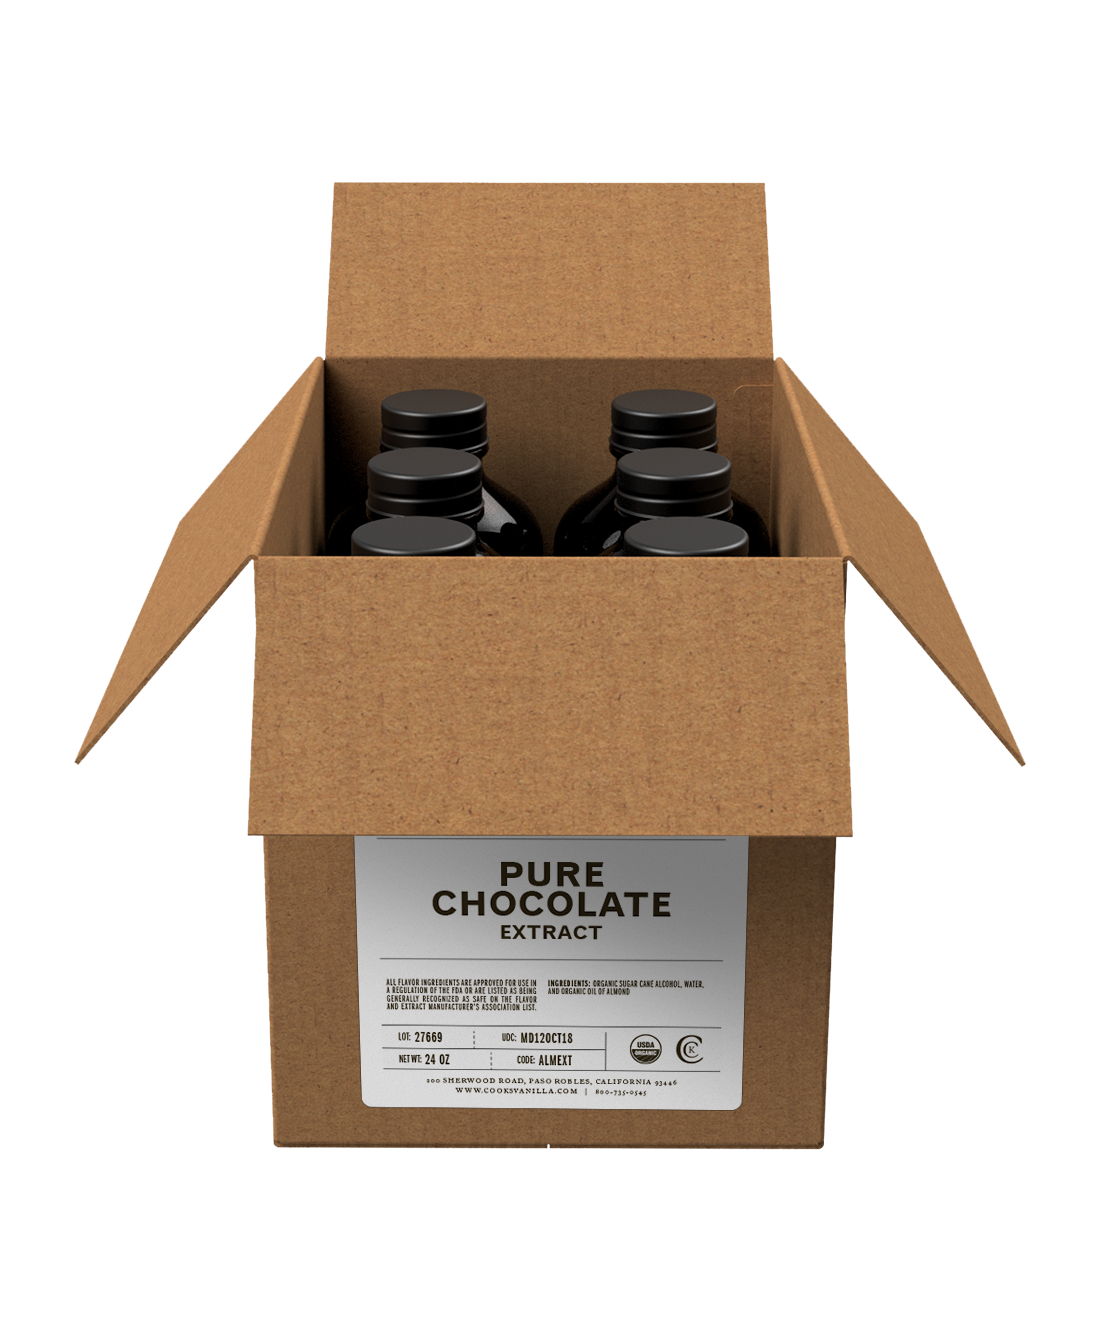 Flavoring | Chocolate Extract (Pure) | Packs and Cases